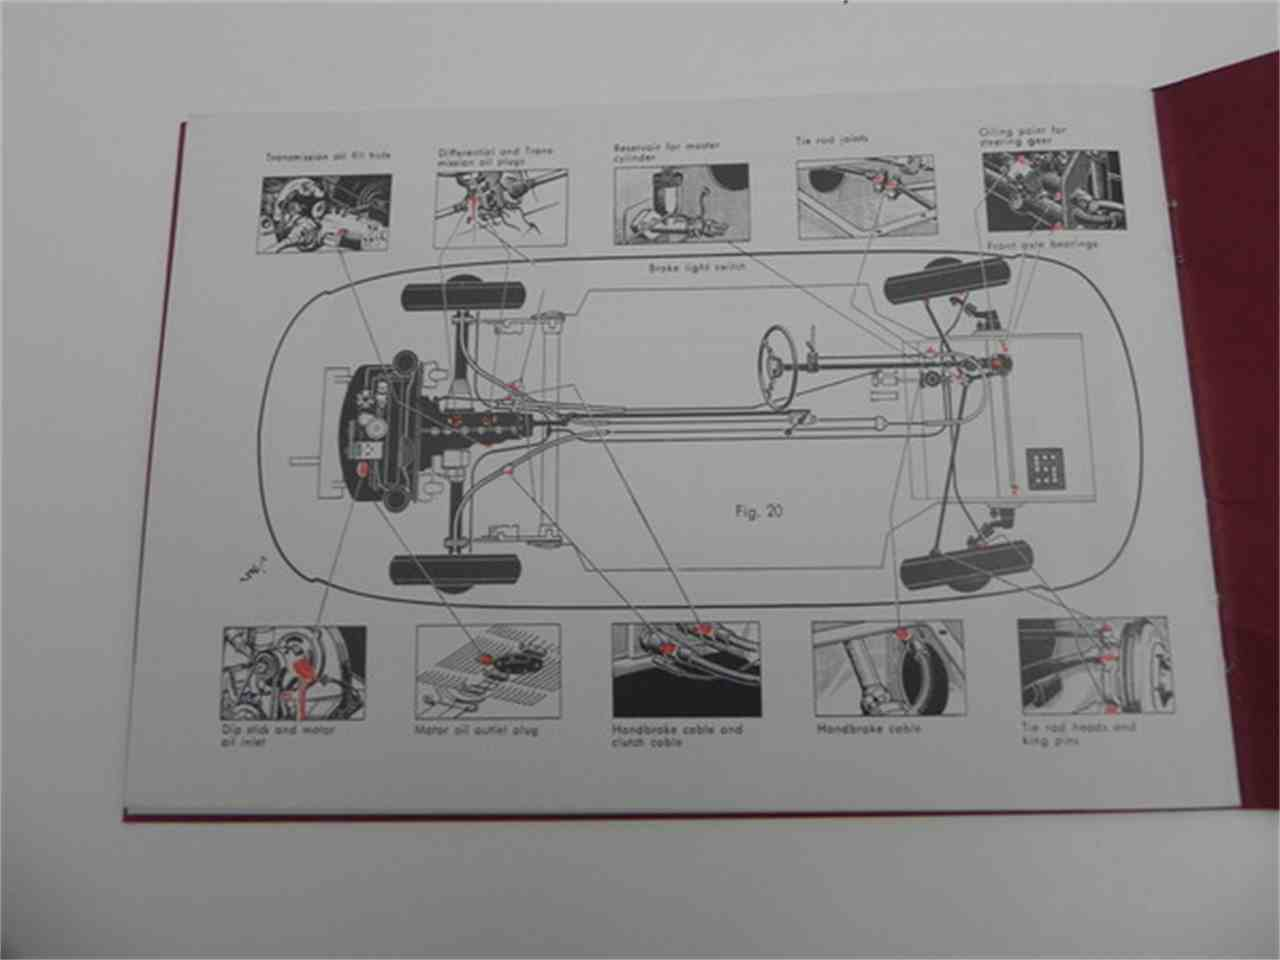 2005 Suzuki Eiger 400 Wiring Diagram Content Resource Of Z400 03 X540